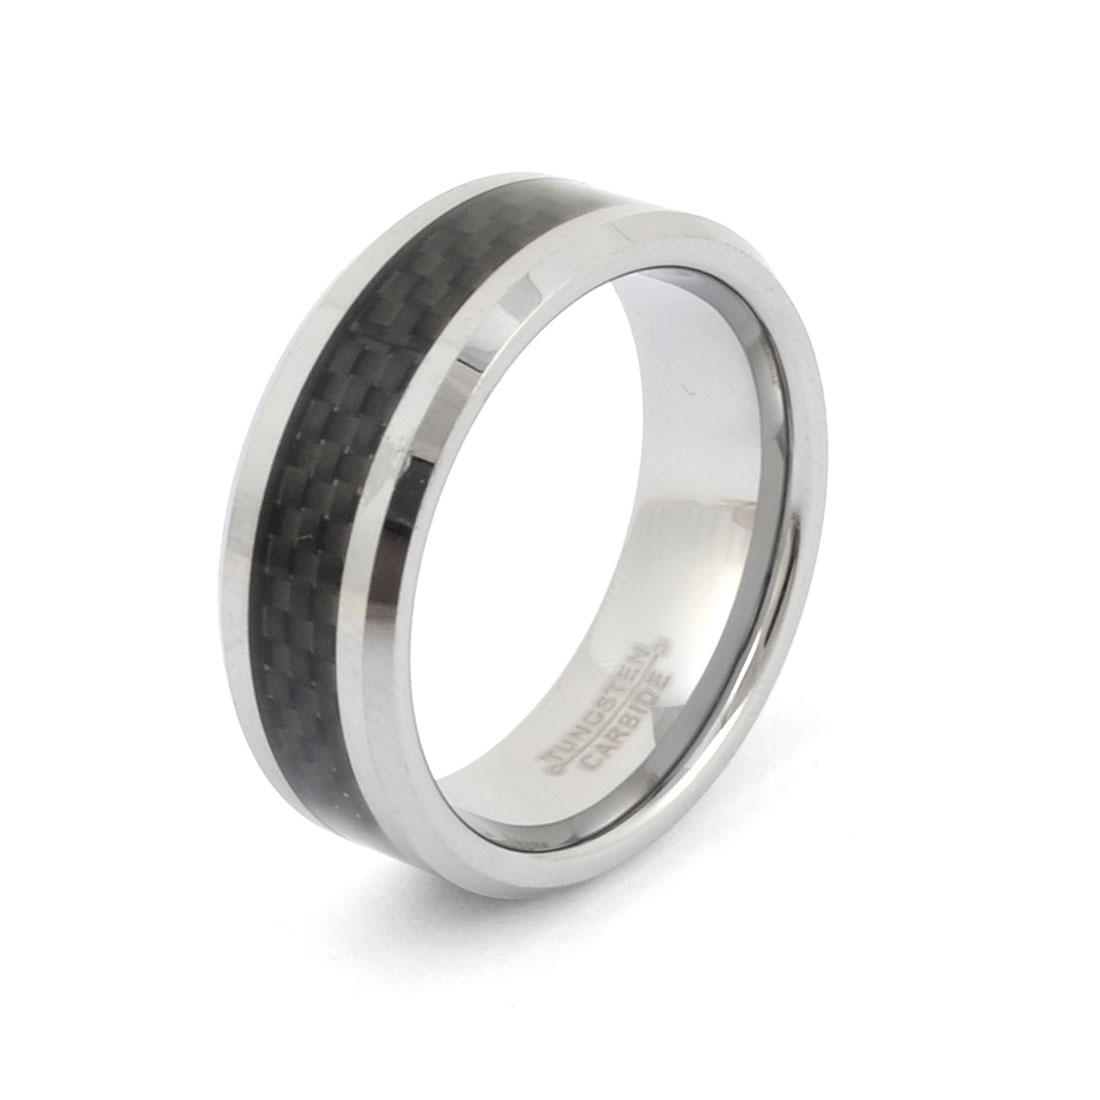 Silver Tone Black 8mm Width Finger Ring Decoration US 9 for Man